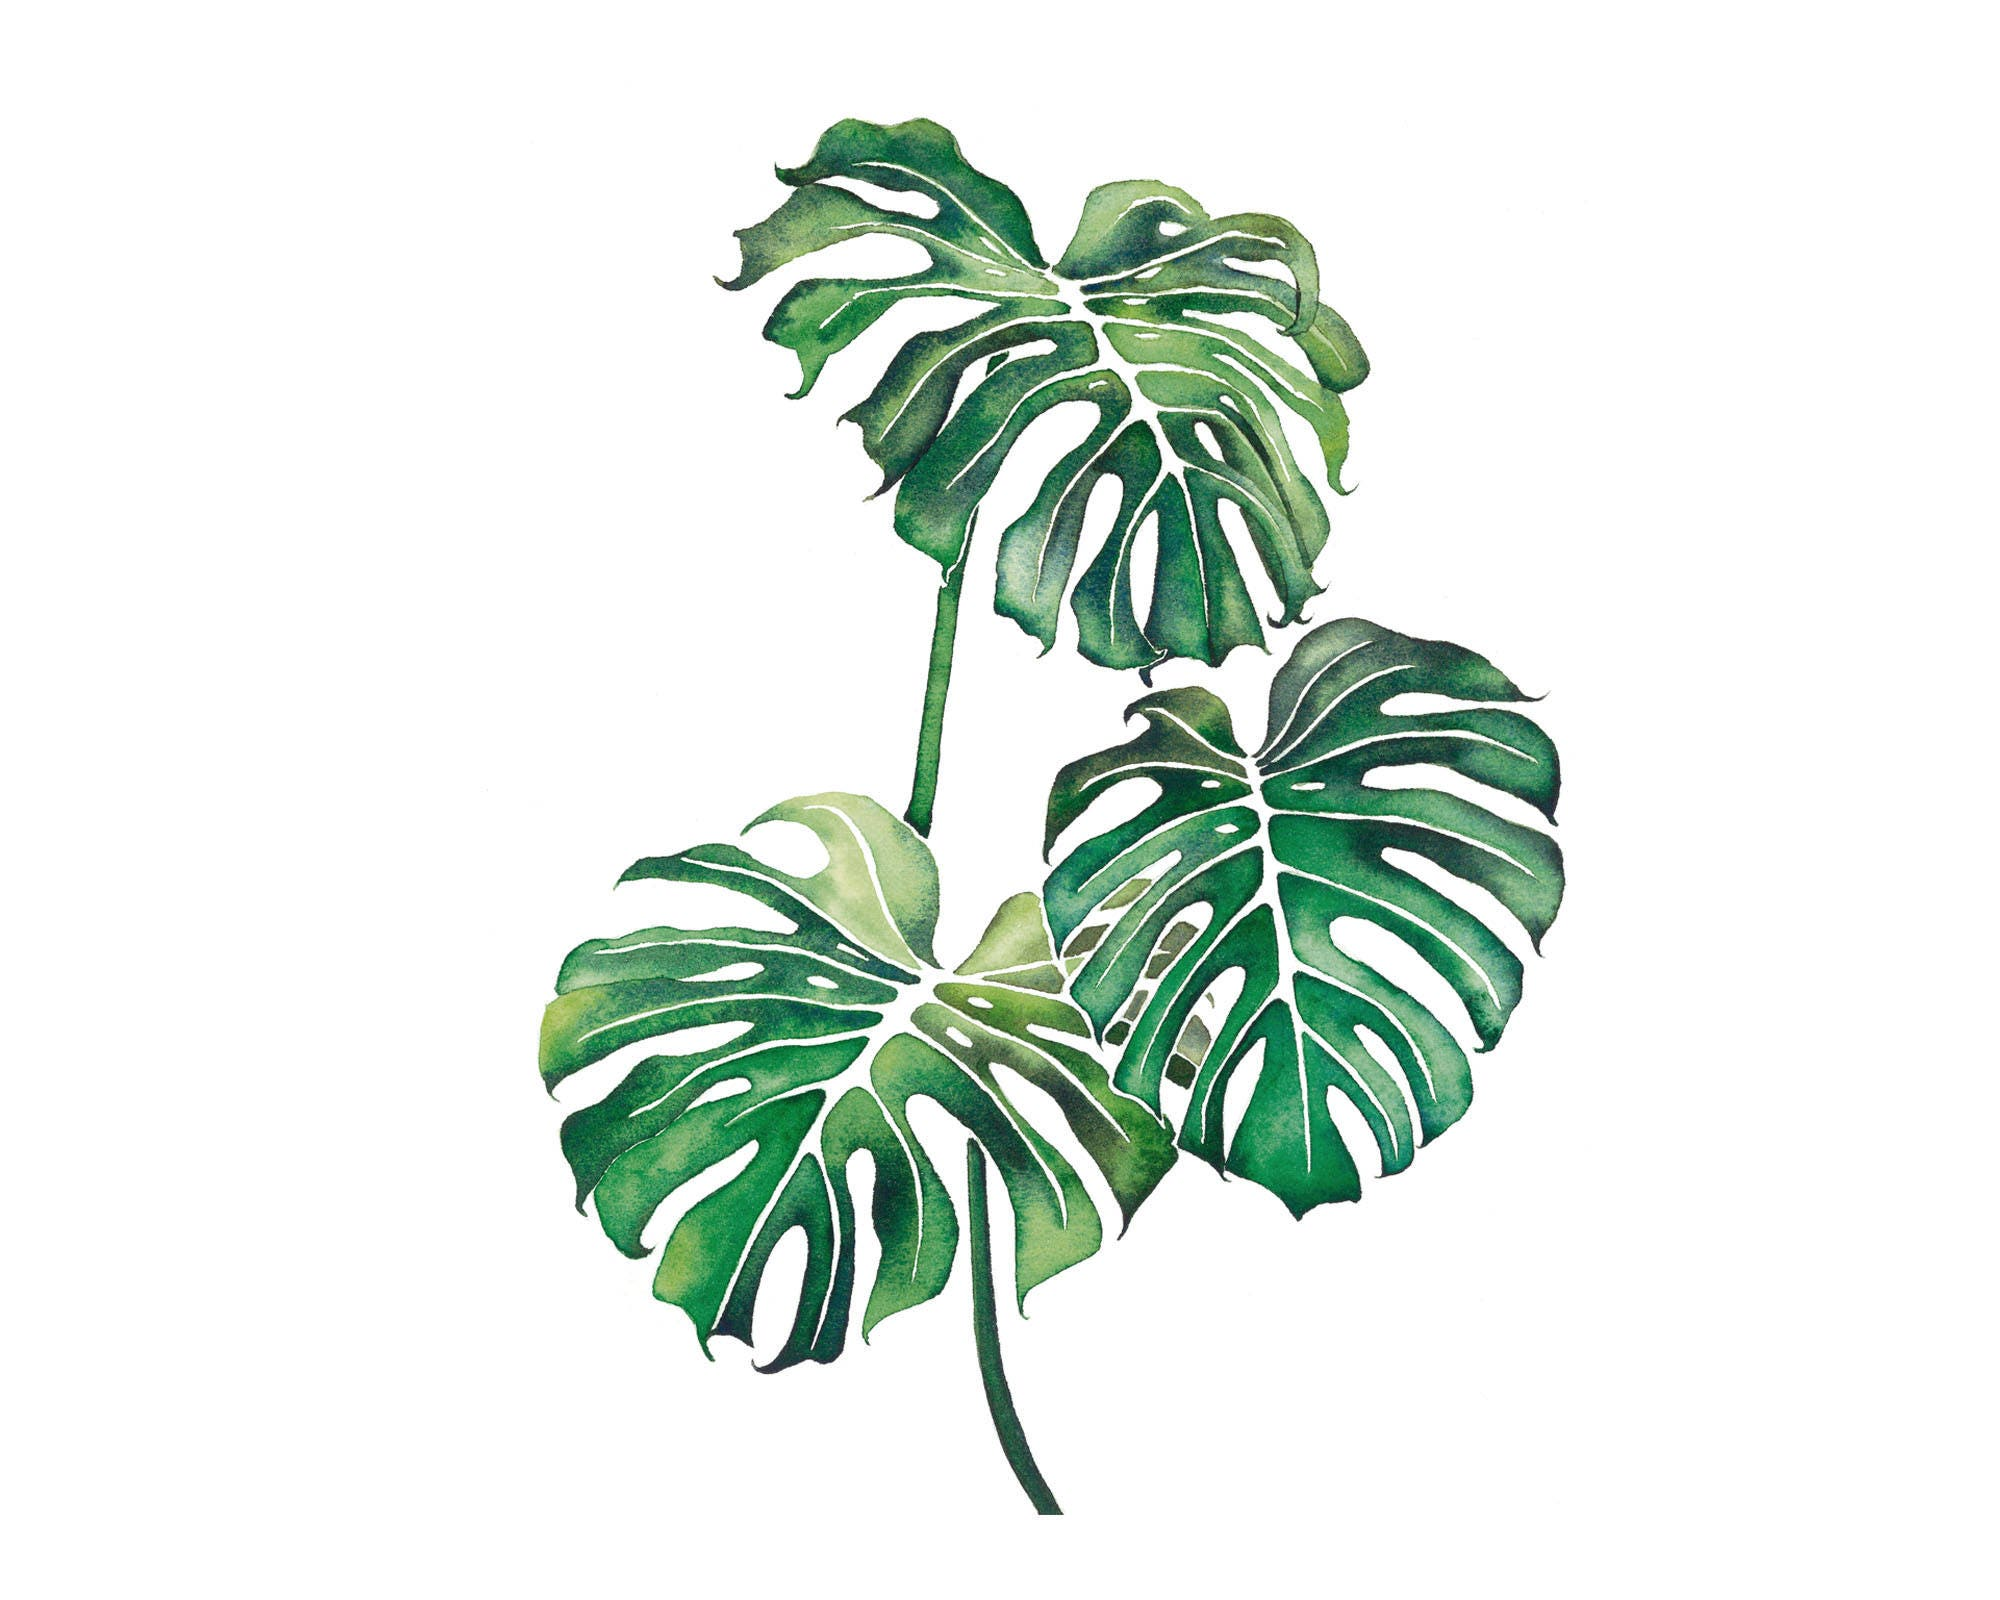 imprimer feuille de monstera monstera plante impression etsy. Black Bedroom Furniture Sets. Home Design Ideas